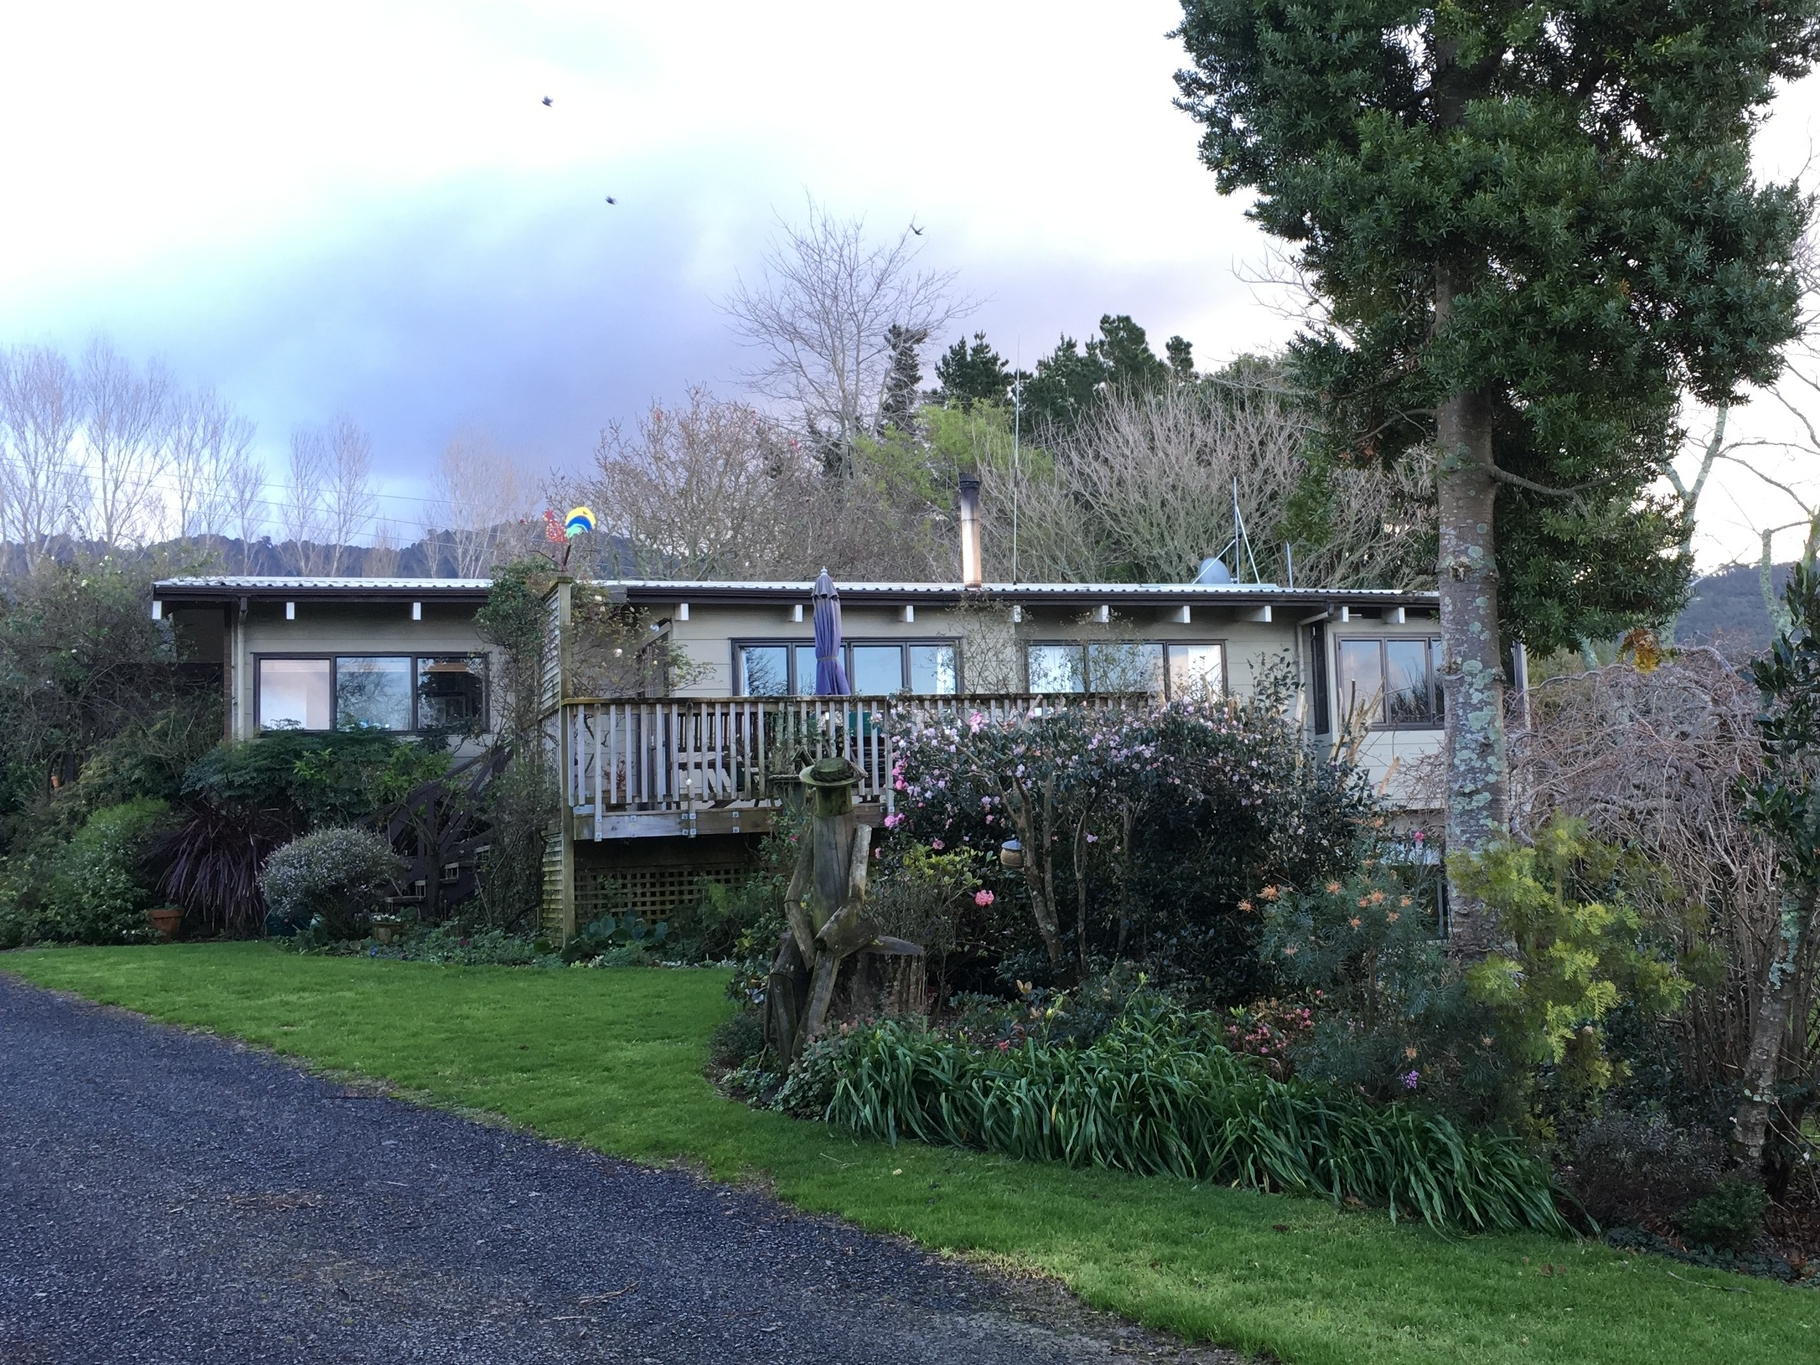 This is Aberfeldy Farmstay BnB - The home of Rod and Mary-Anne Calver